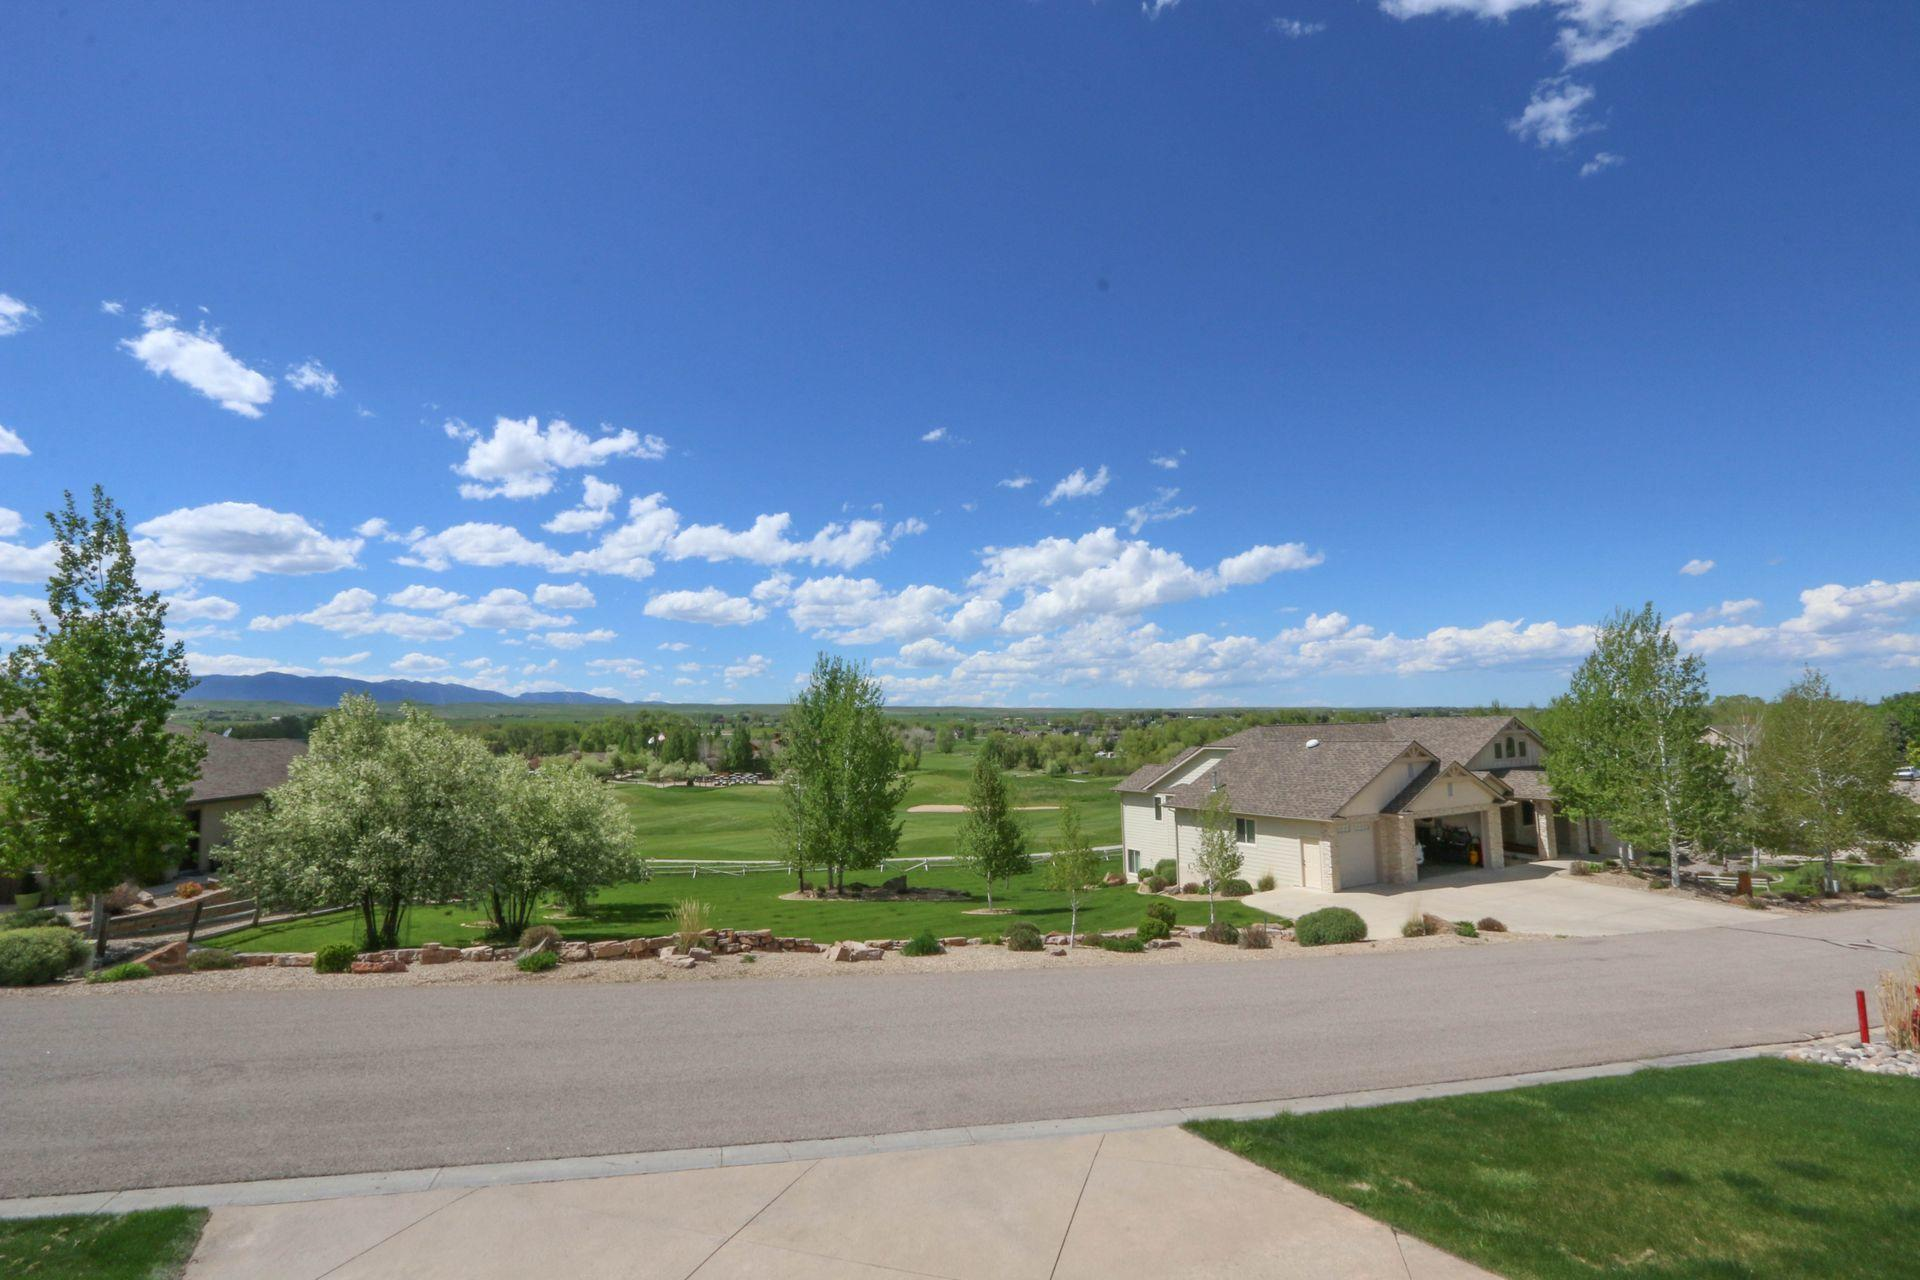 35 Canyon View Drive, Sheridan, Wyoming 82801, 4 Bedrooms Bedrooms, ,4 BathroomsBathrooms,Residential,For Sale,Canyon View,19-329